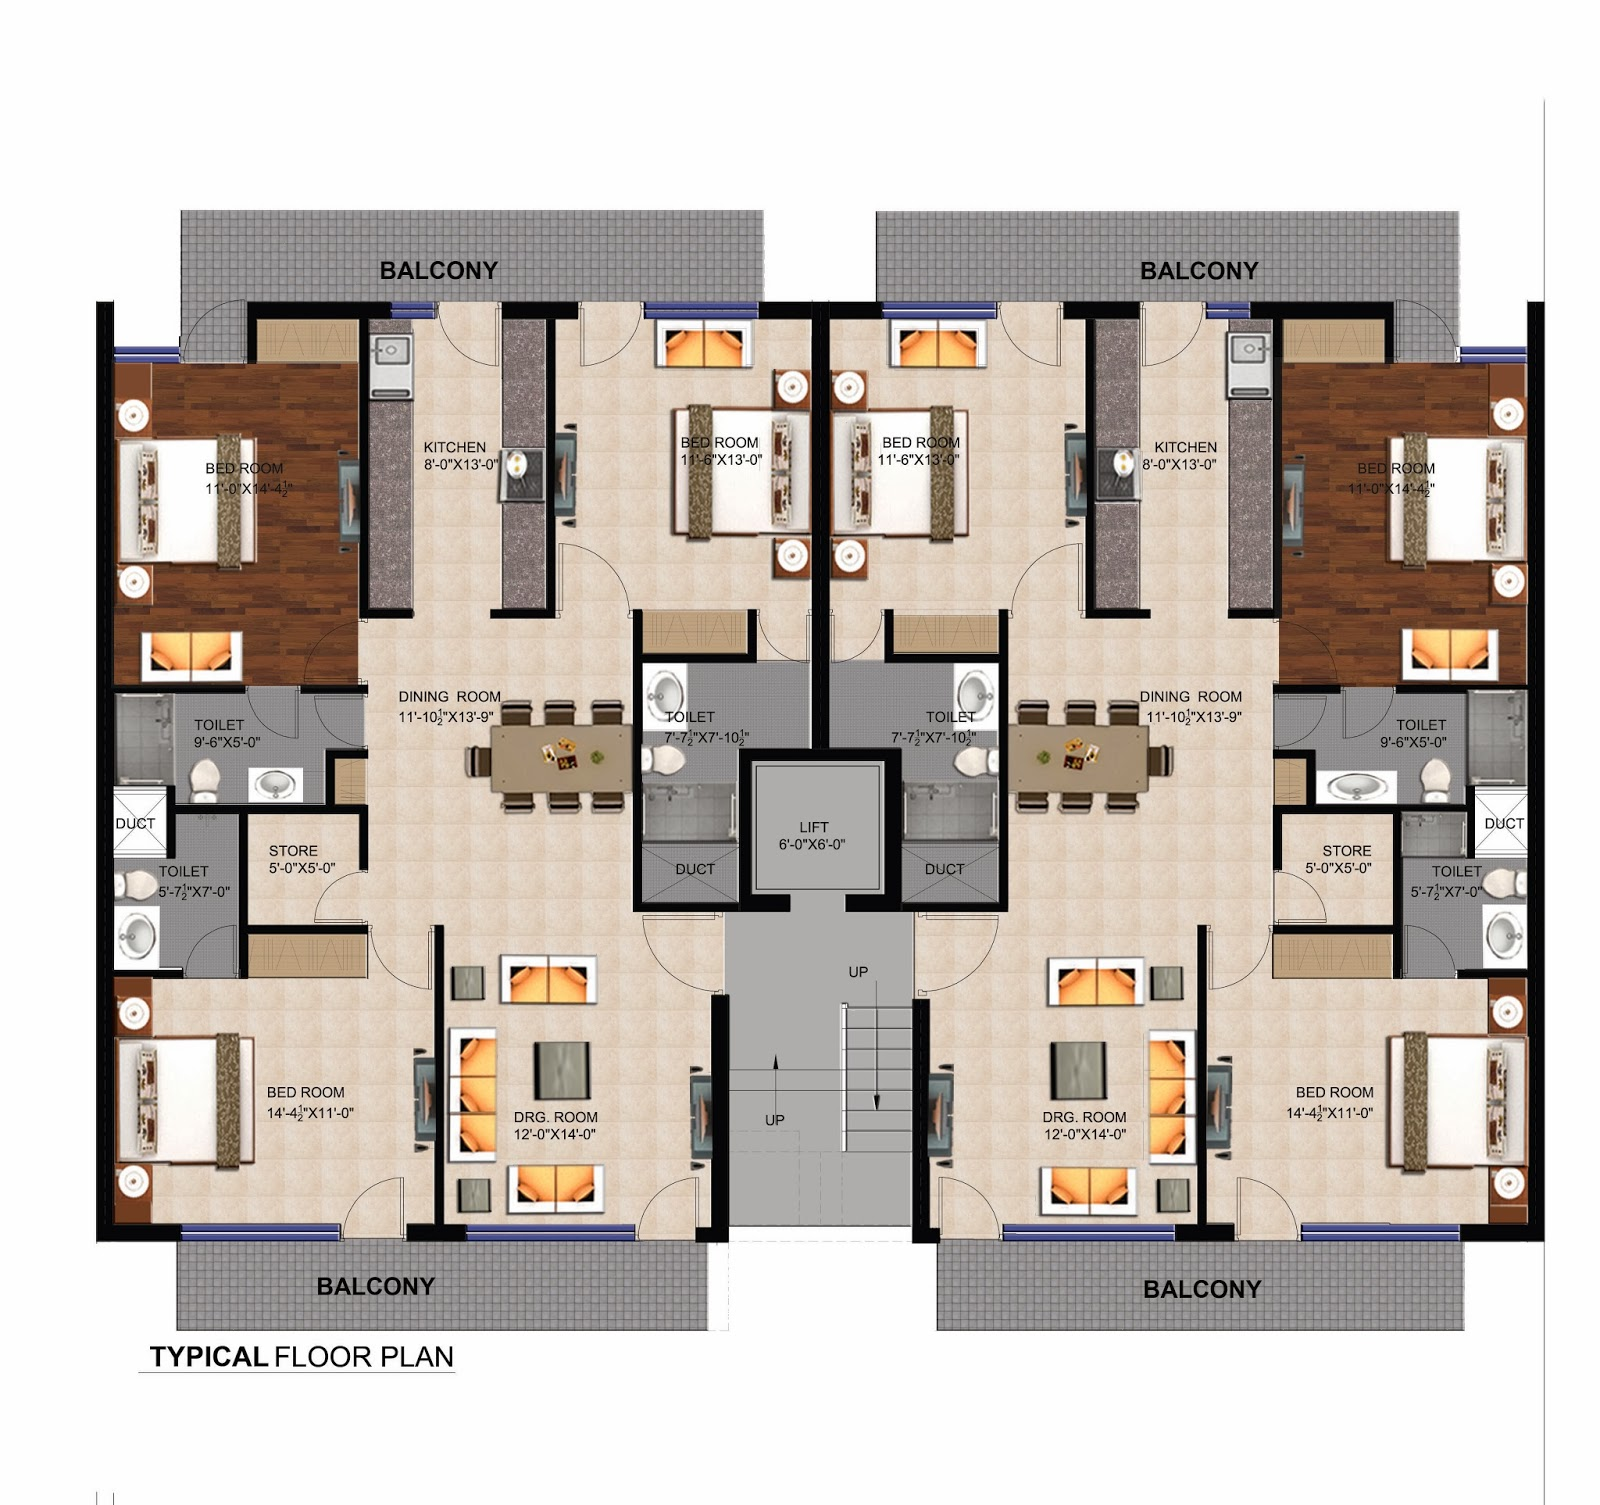 palm aprtments 3bhk floors manohar singh and company mullanpur